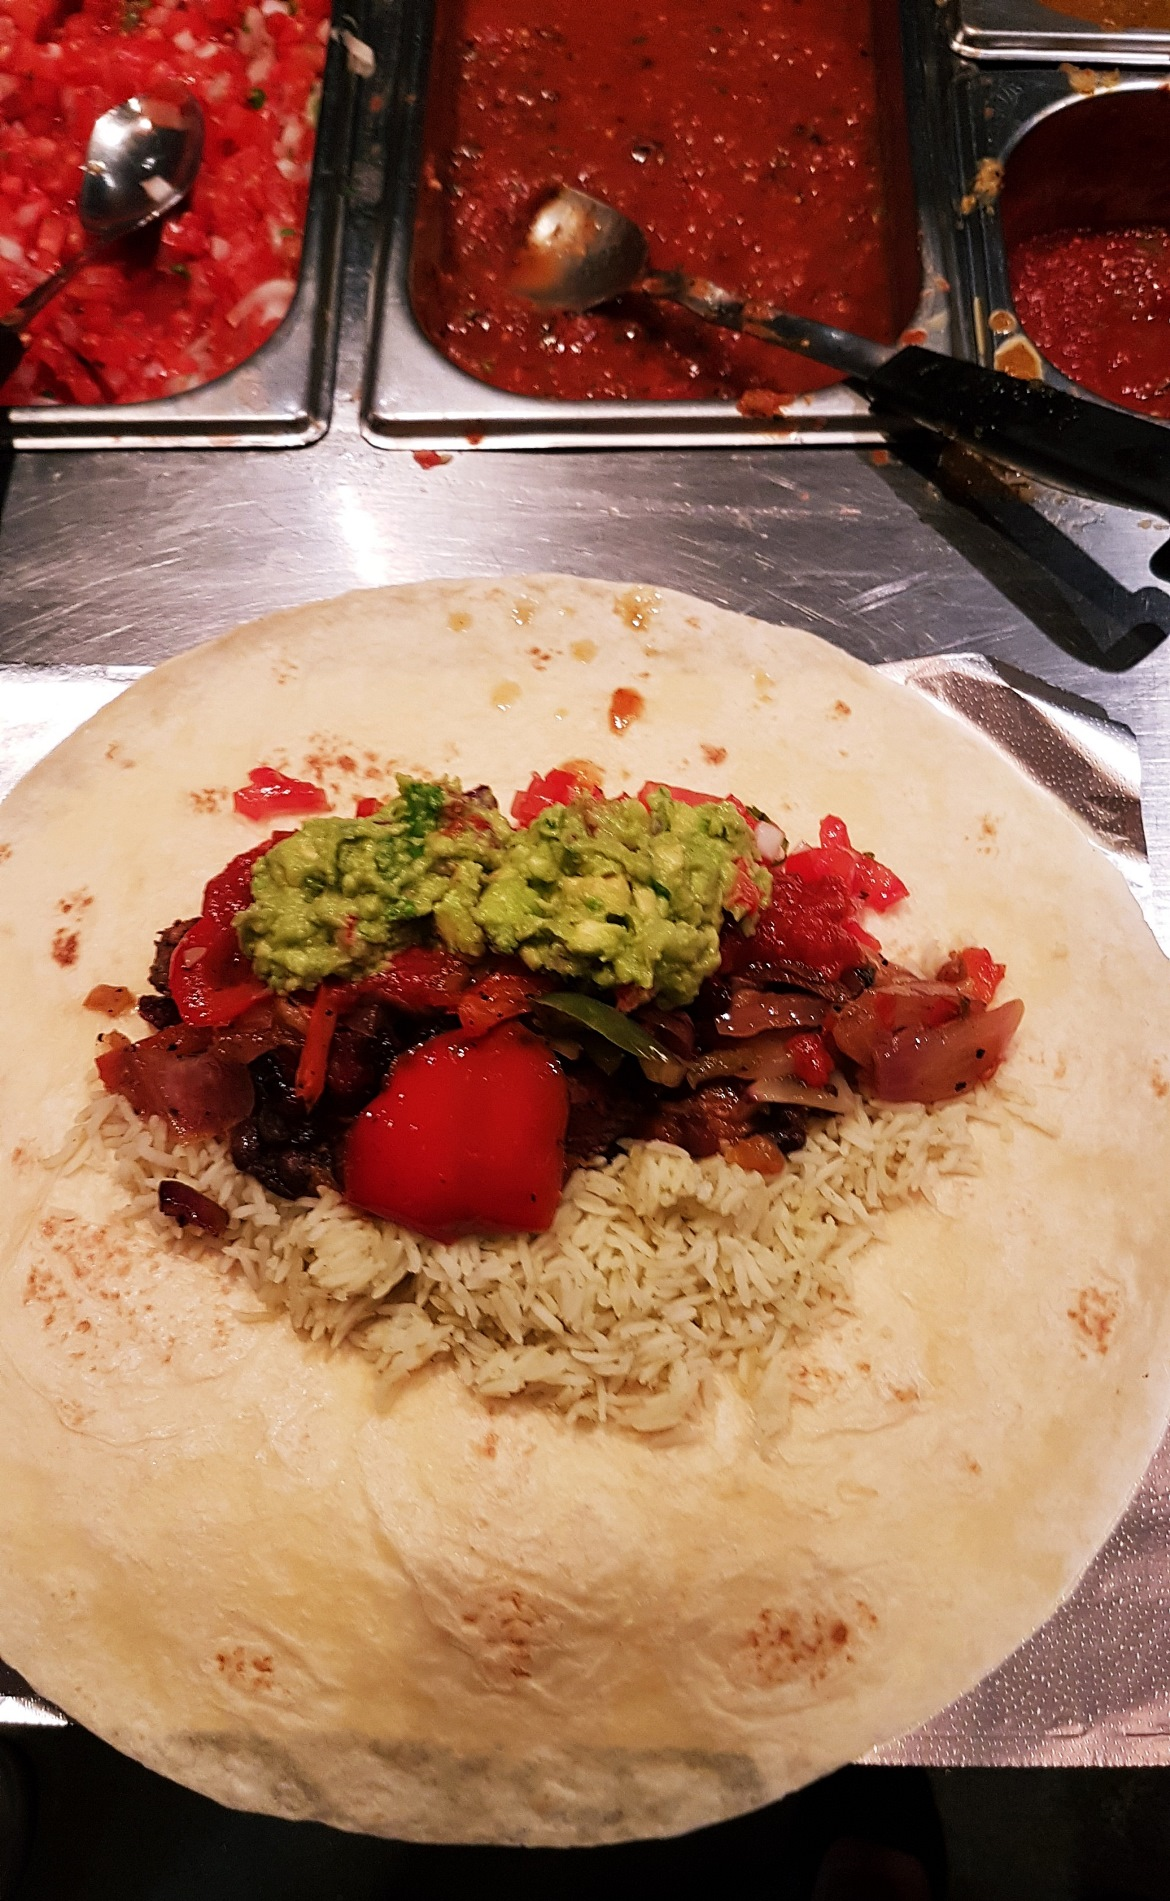 A fully loaded burrito - Burrito Masterclass with Barburrito, review by BeckyBecky Blogs